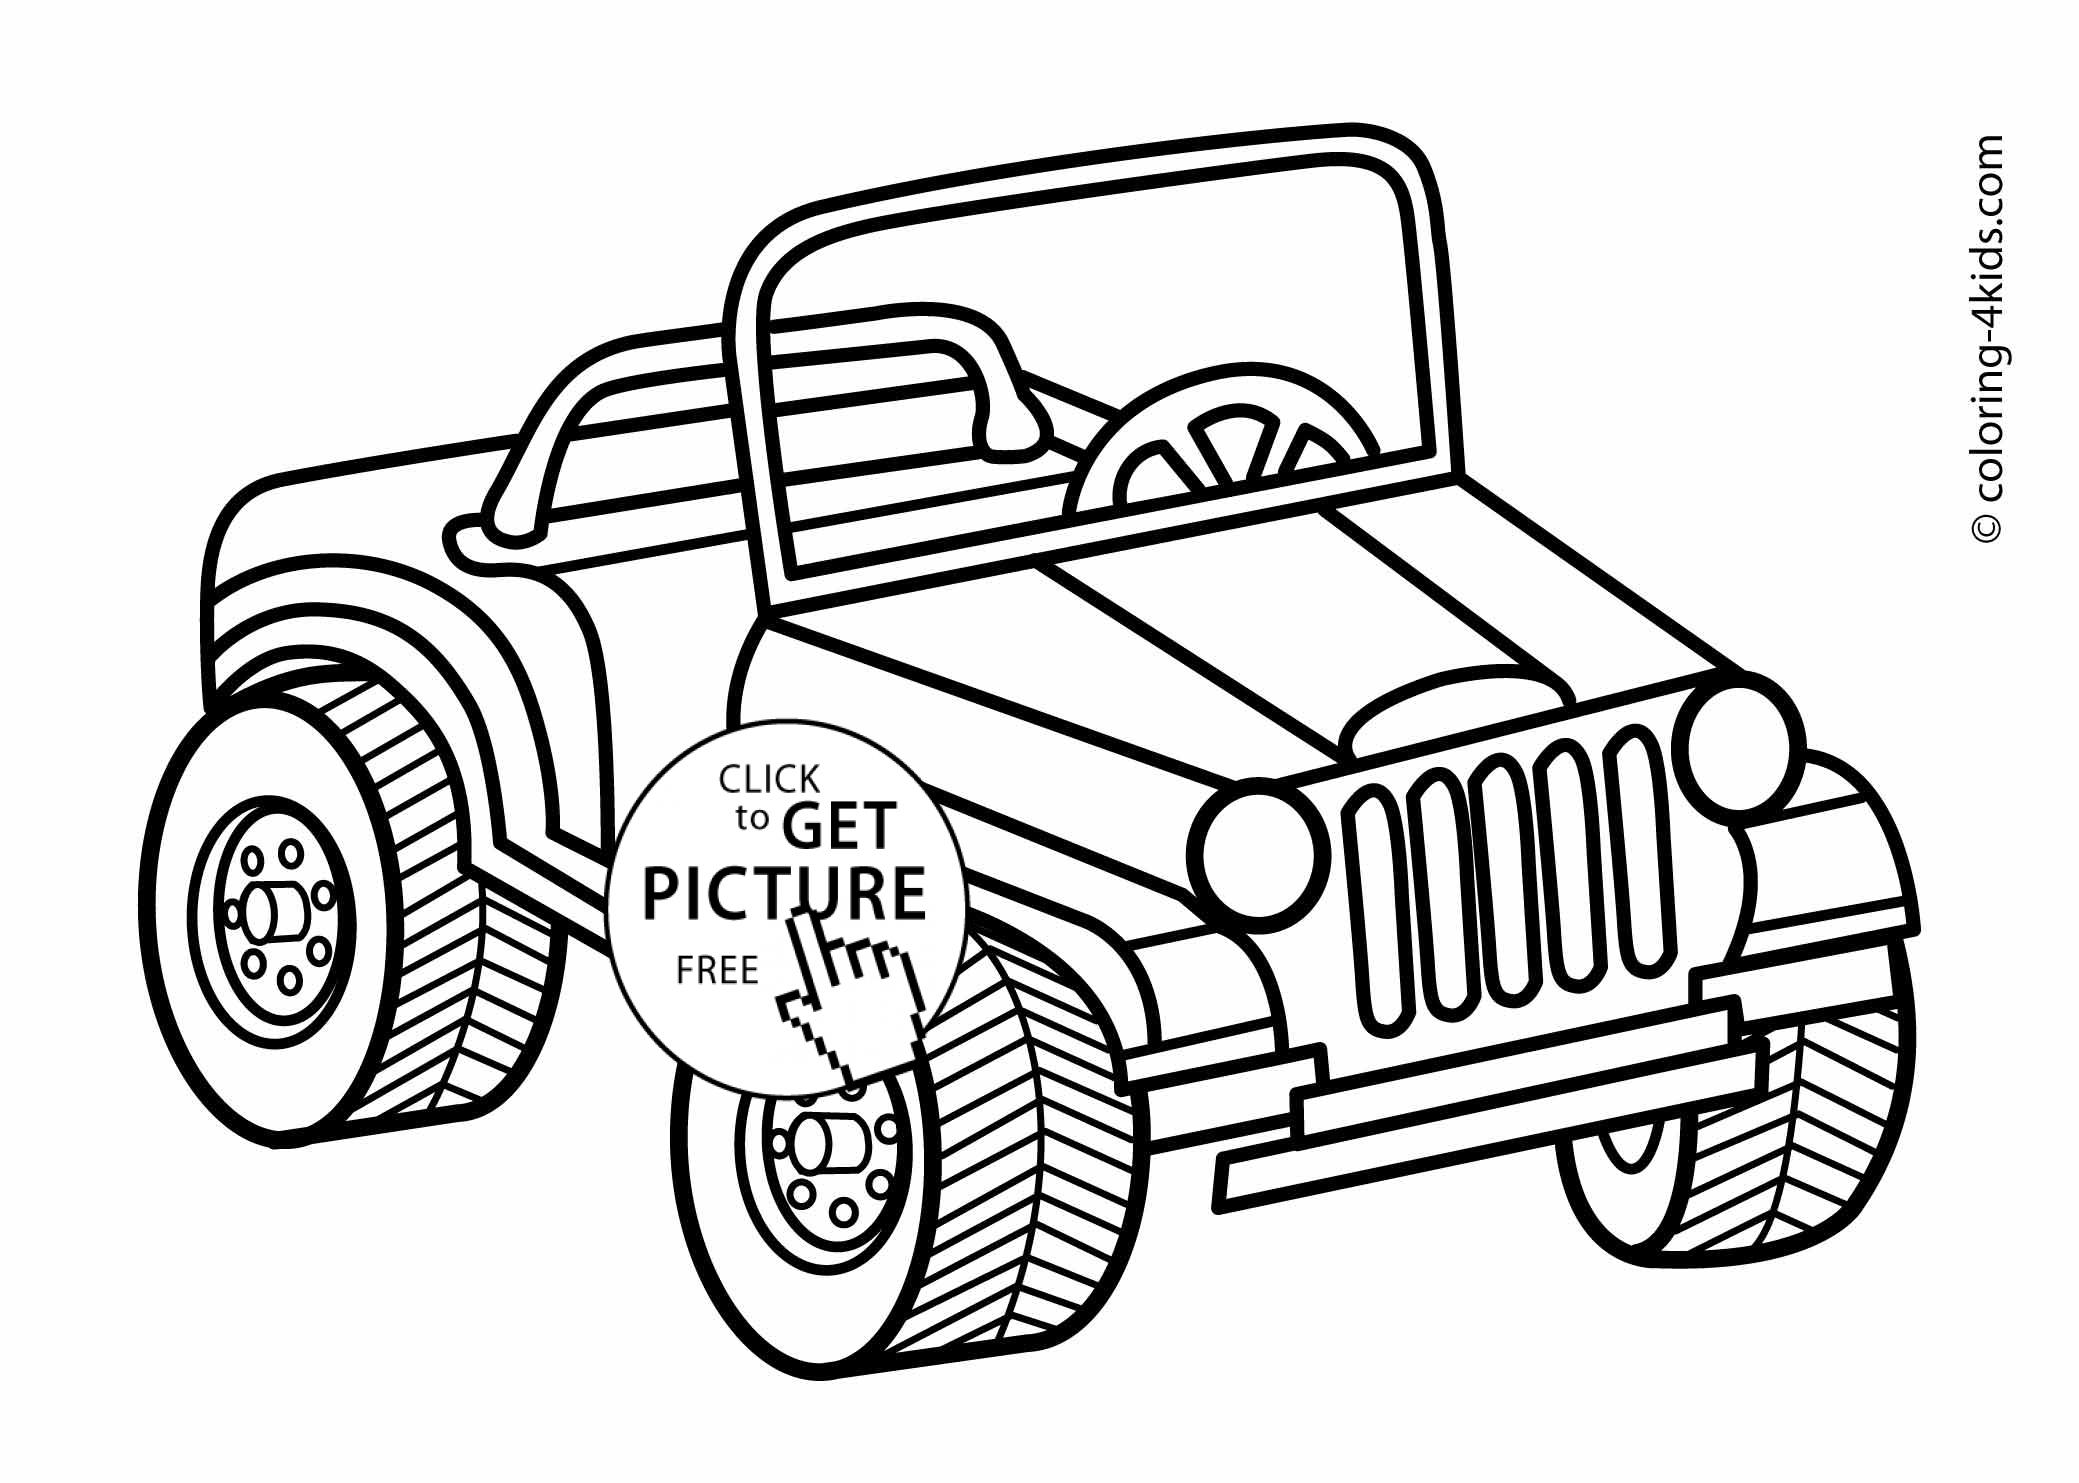 old fashioned car coloring pages cars coloring page coloring pages american muscle car pages old fashioned coloring